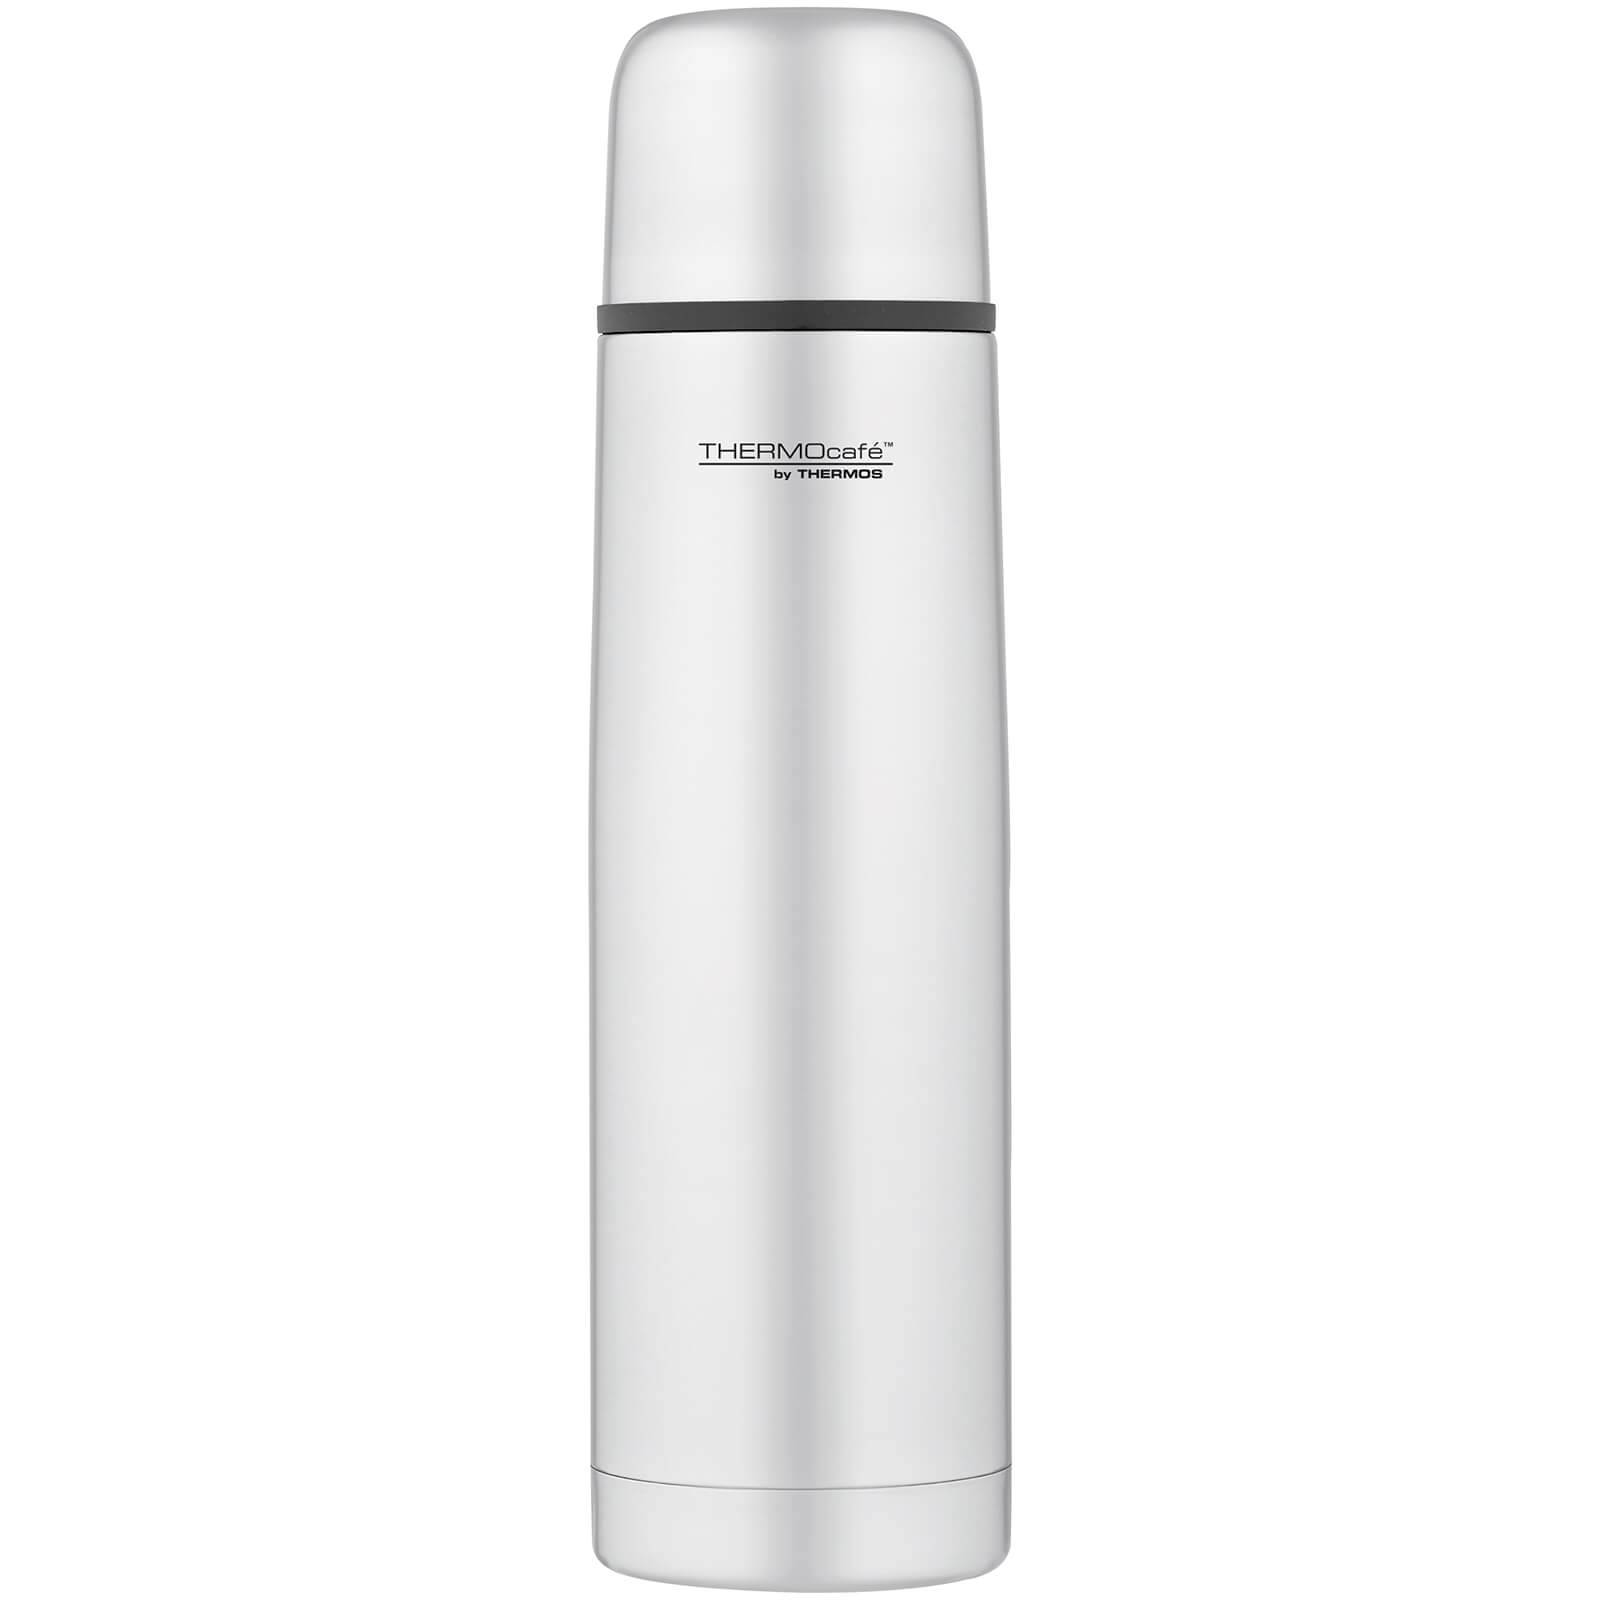 Thermos ThermoCafe Stainless Steel Flask 1L